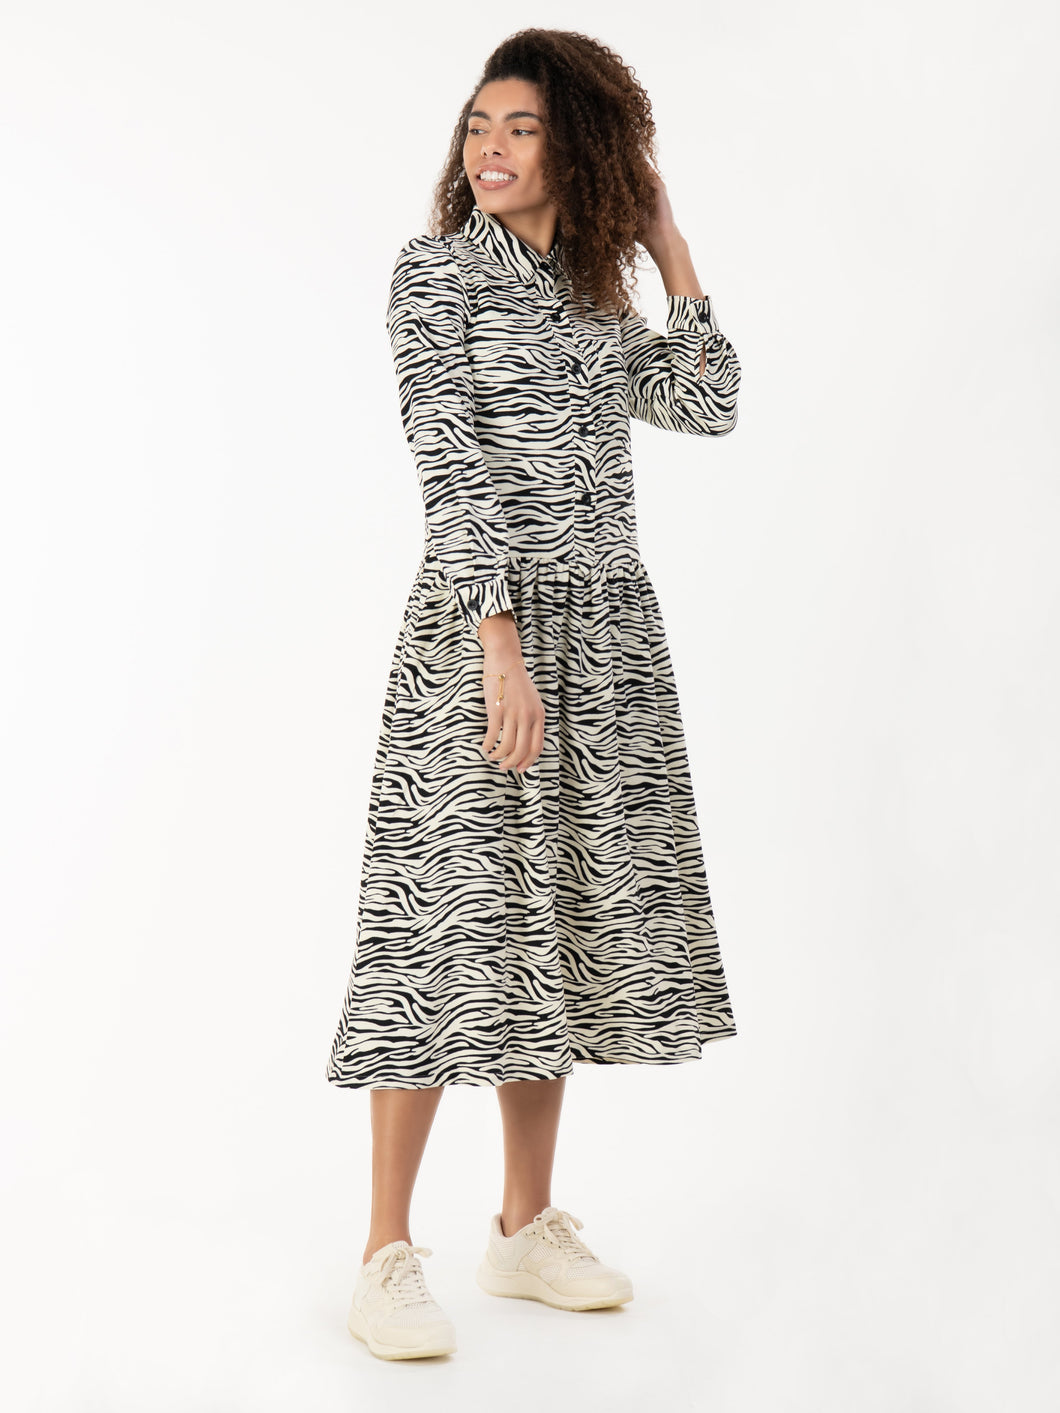 Jolie Moi Print Woven Maxi Shirt Dress, White Animal